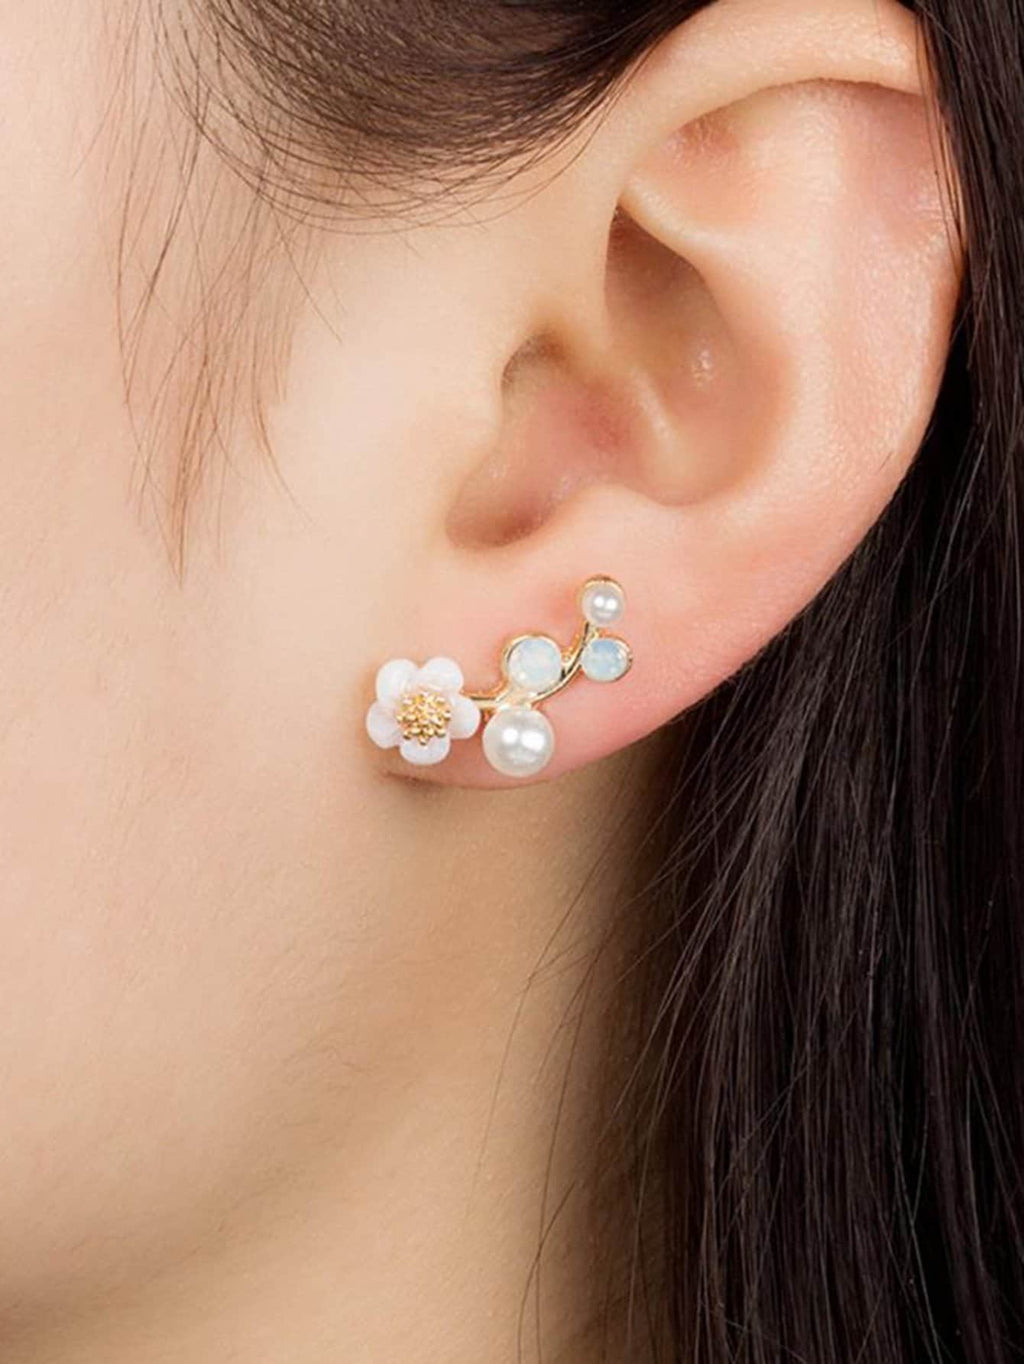 Ladies Earrings - Faux Pearl & Flower Stud Earrings